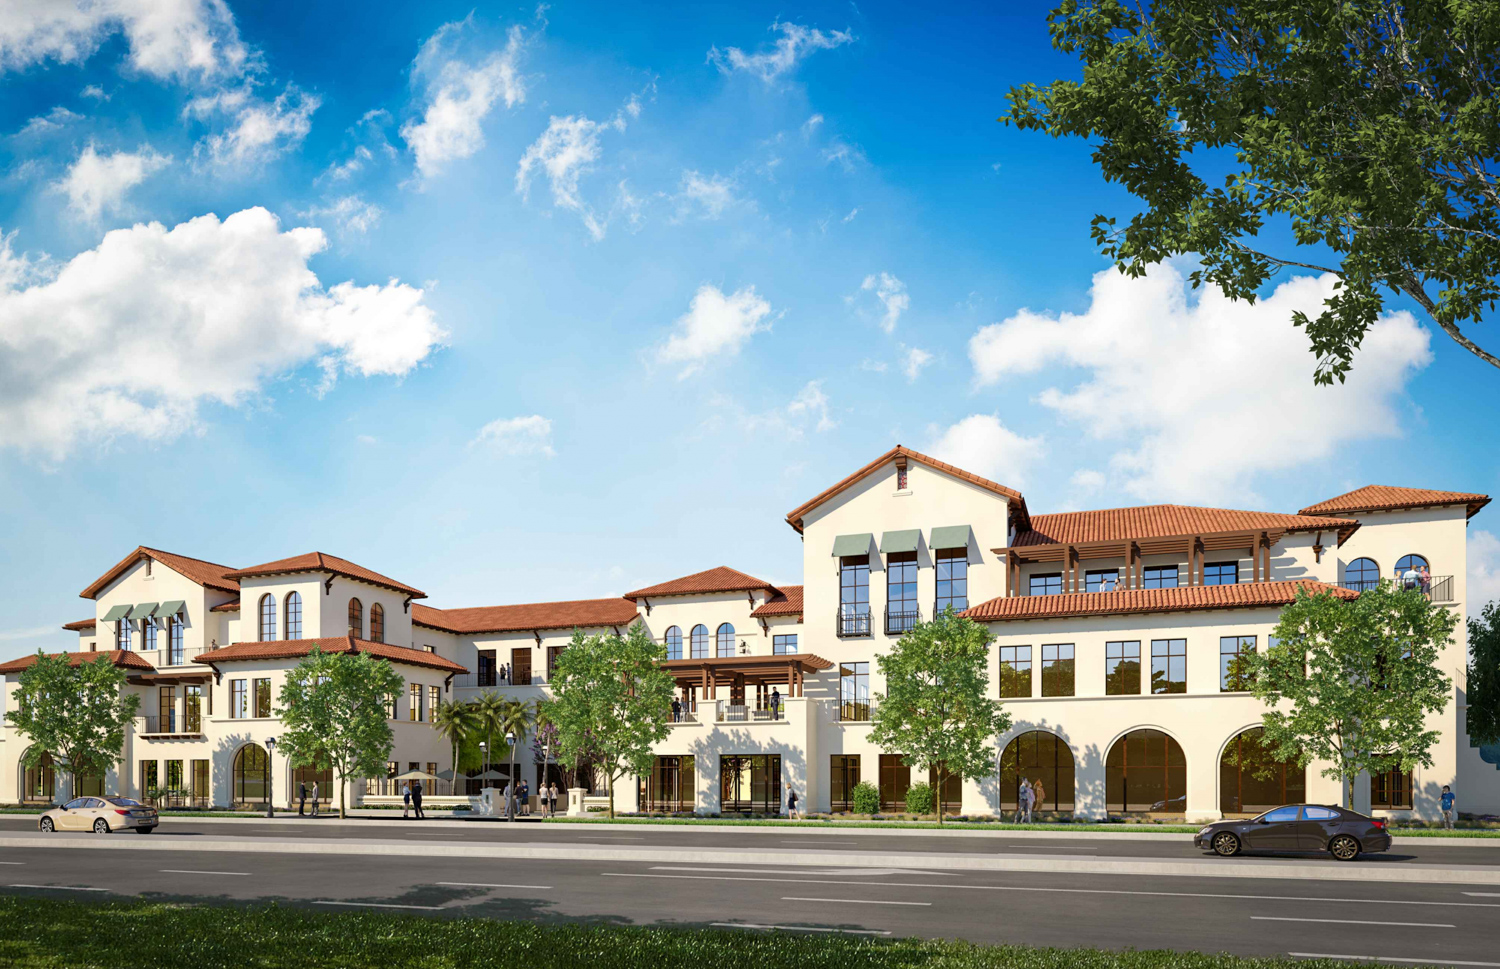 300 El Camino Real at Middle Plaza, rendering from Stanford University